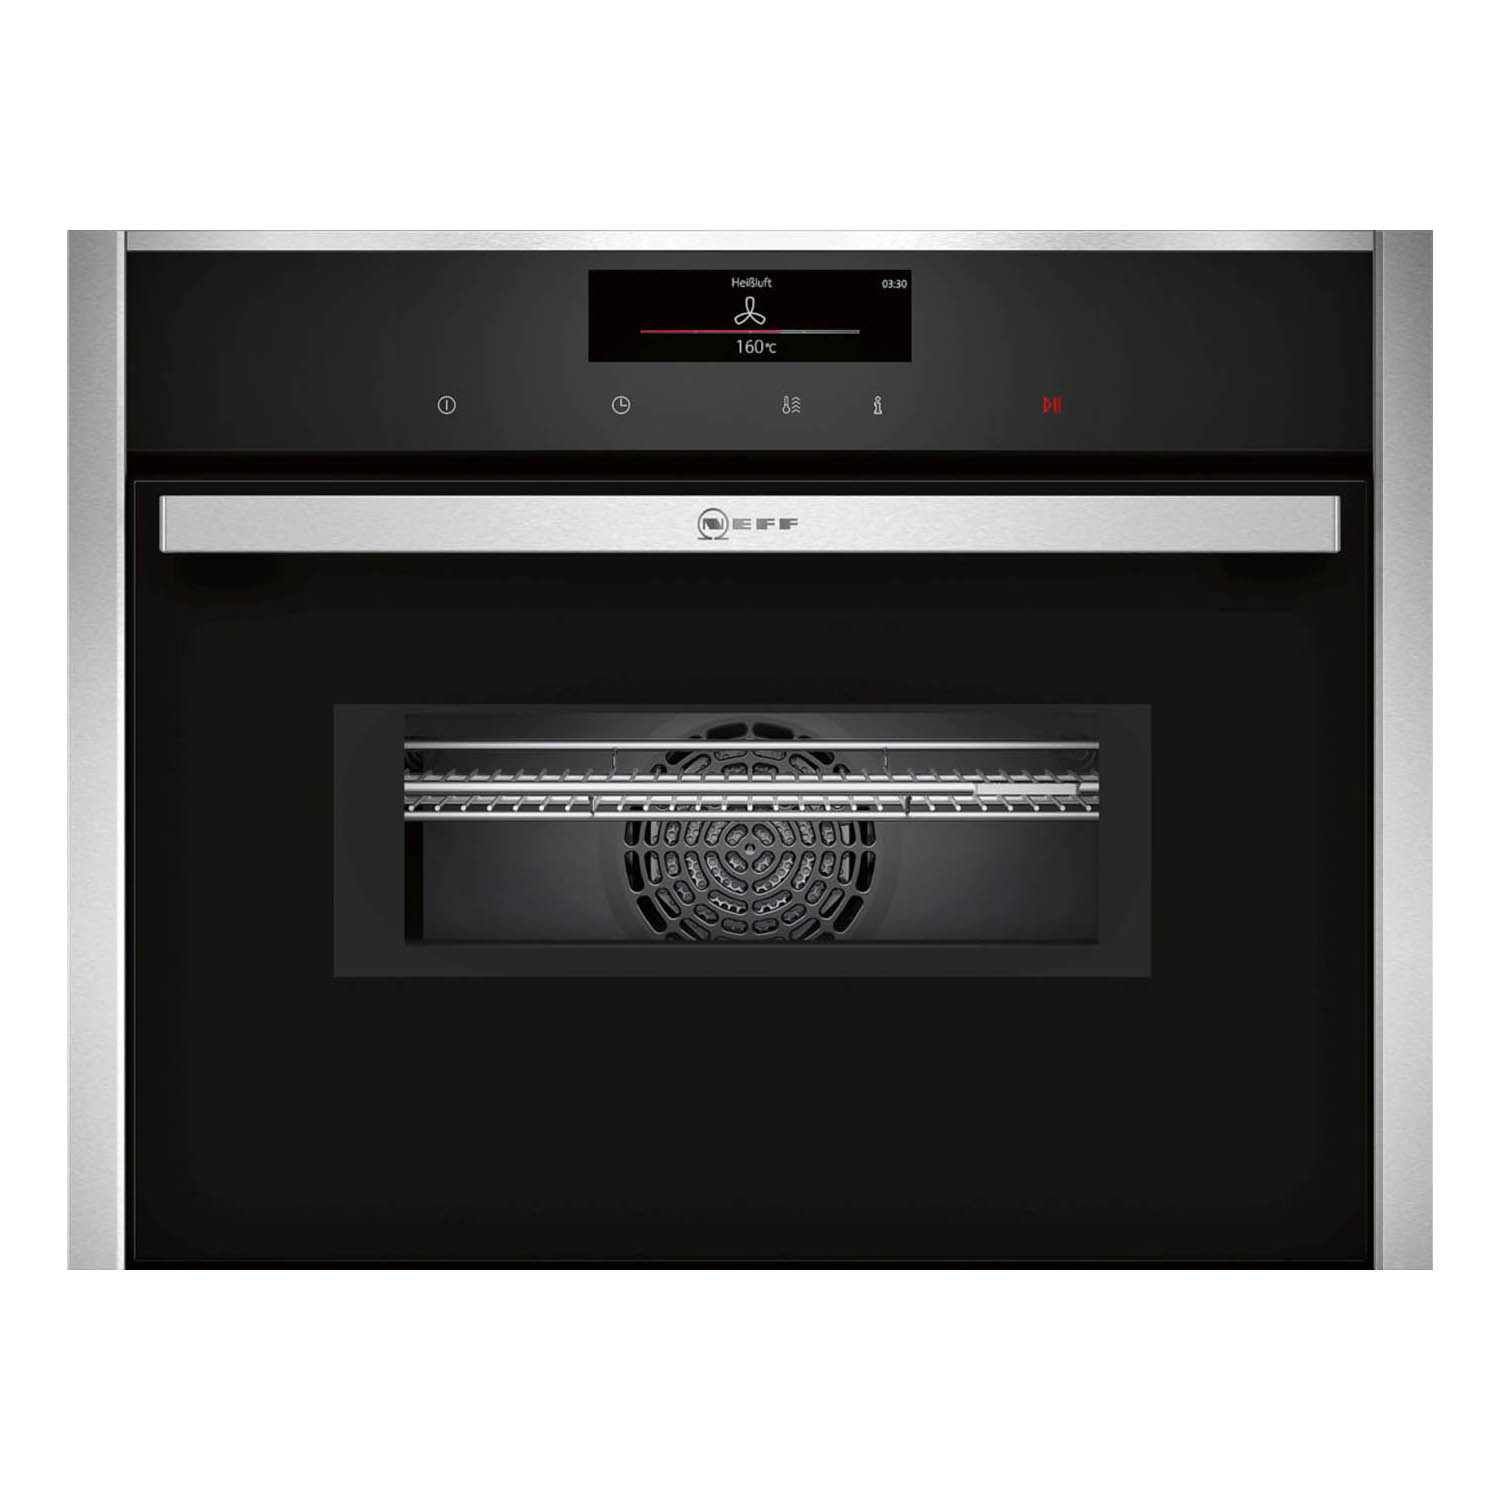 Neff N90 Pyrolytic Compact 45cm Oven with Microwave C28MT27N0B